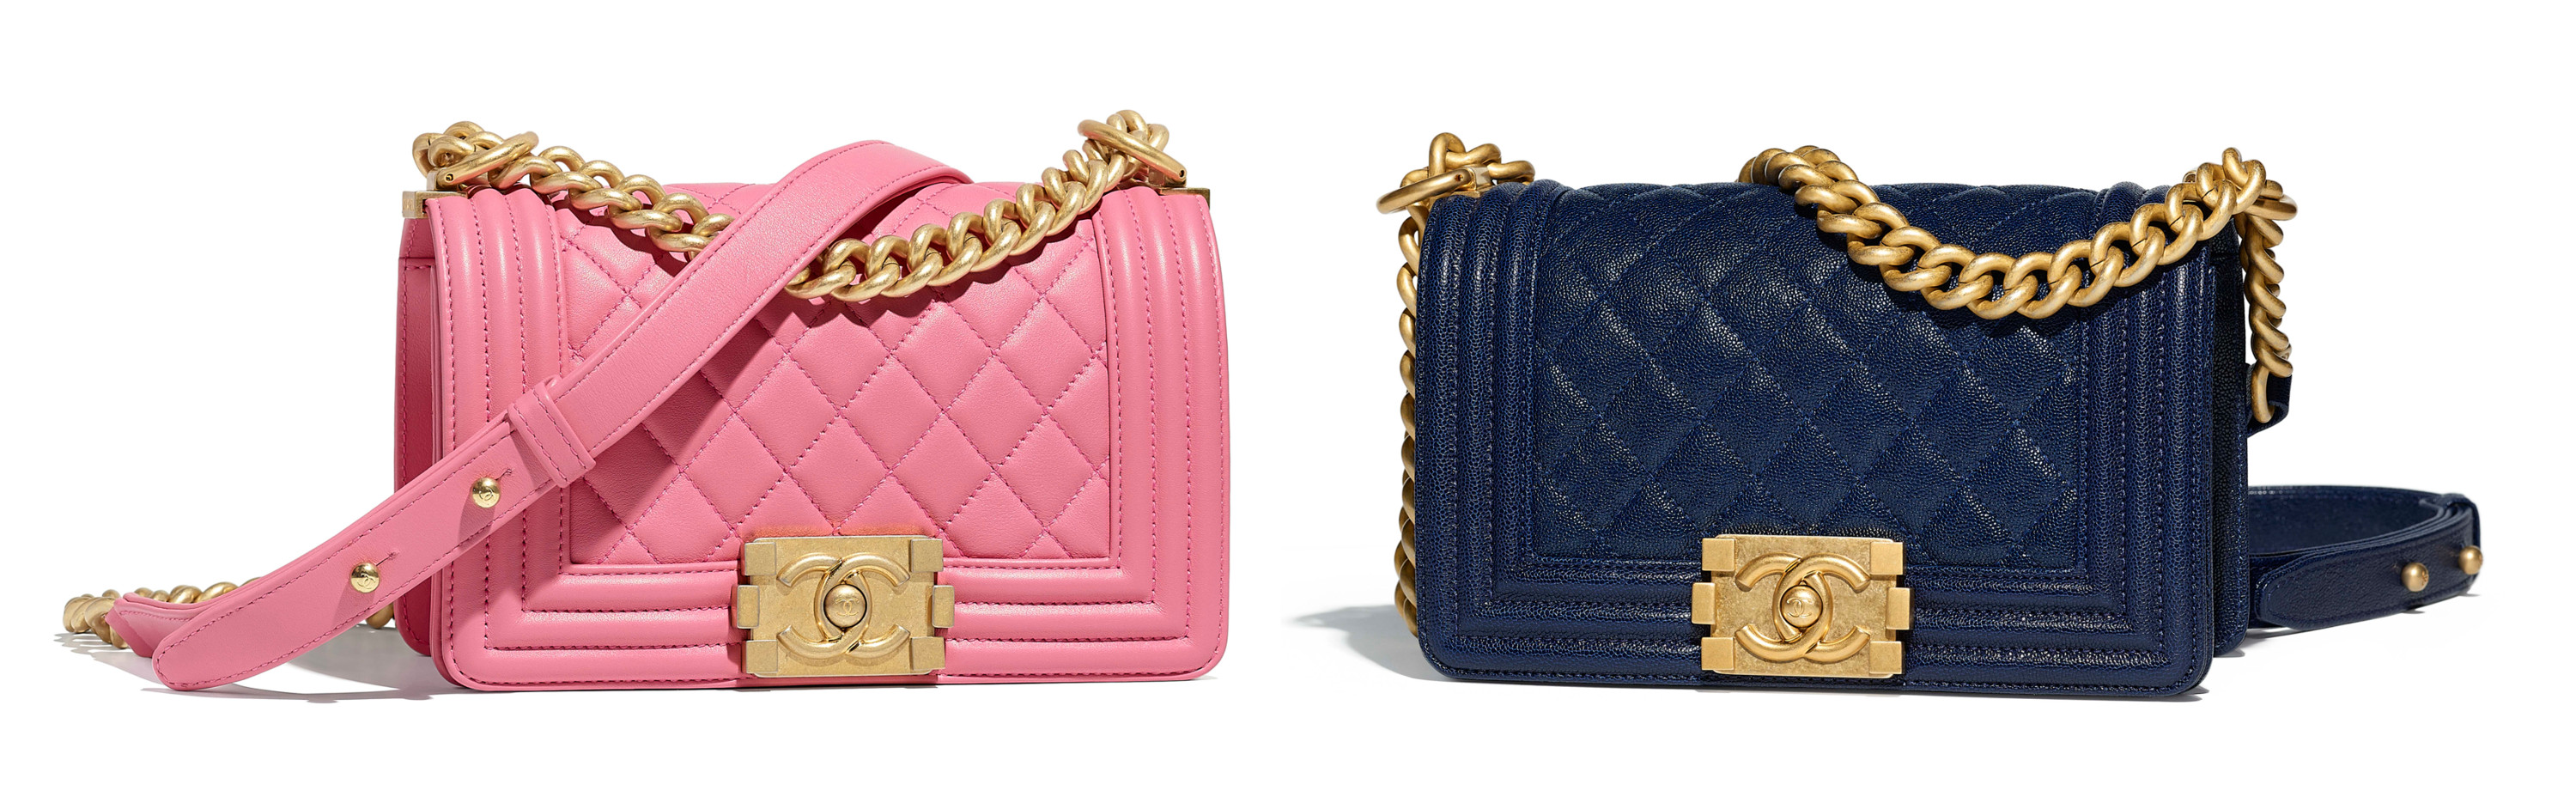 Chanel le boy pink navy price more expensive